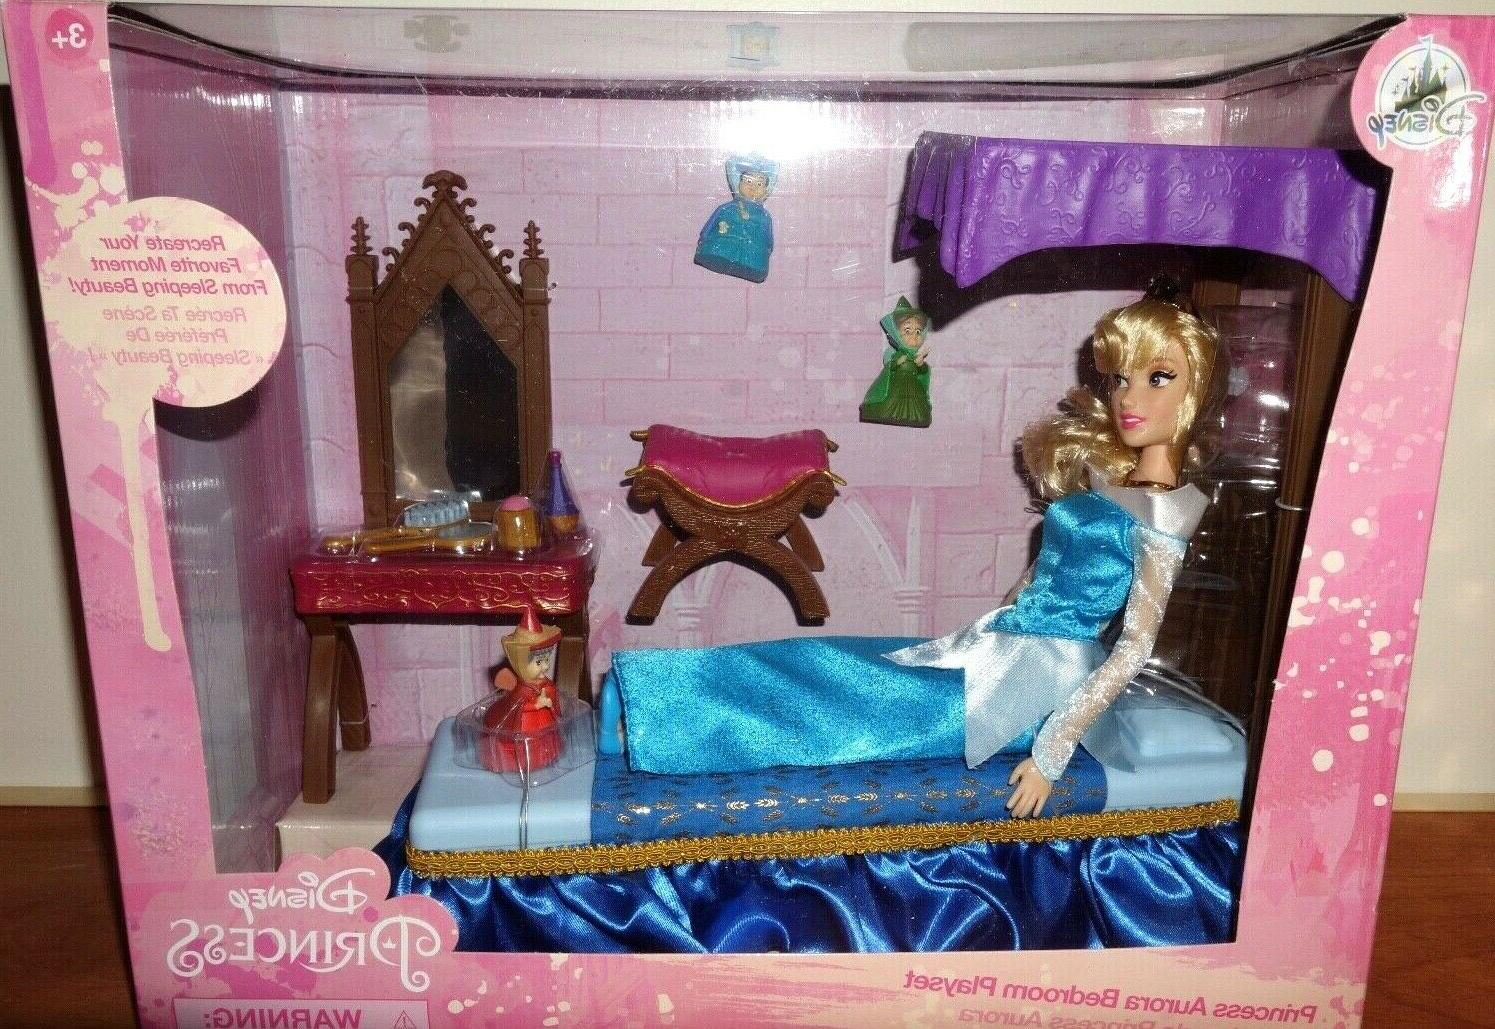 store aurora classic doll bedroom play set